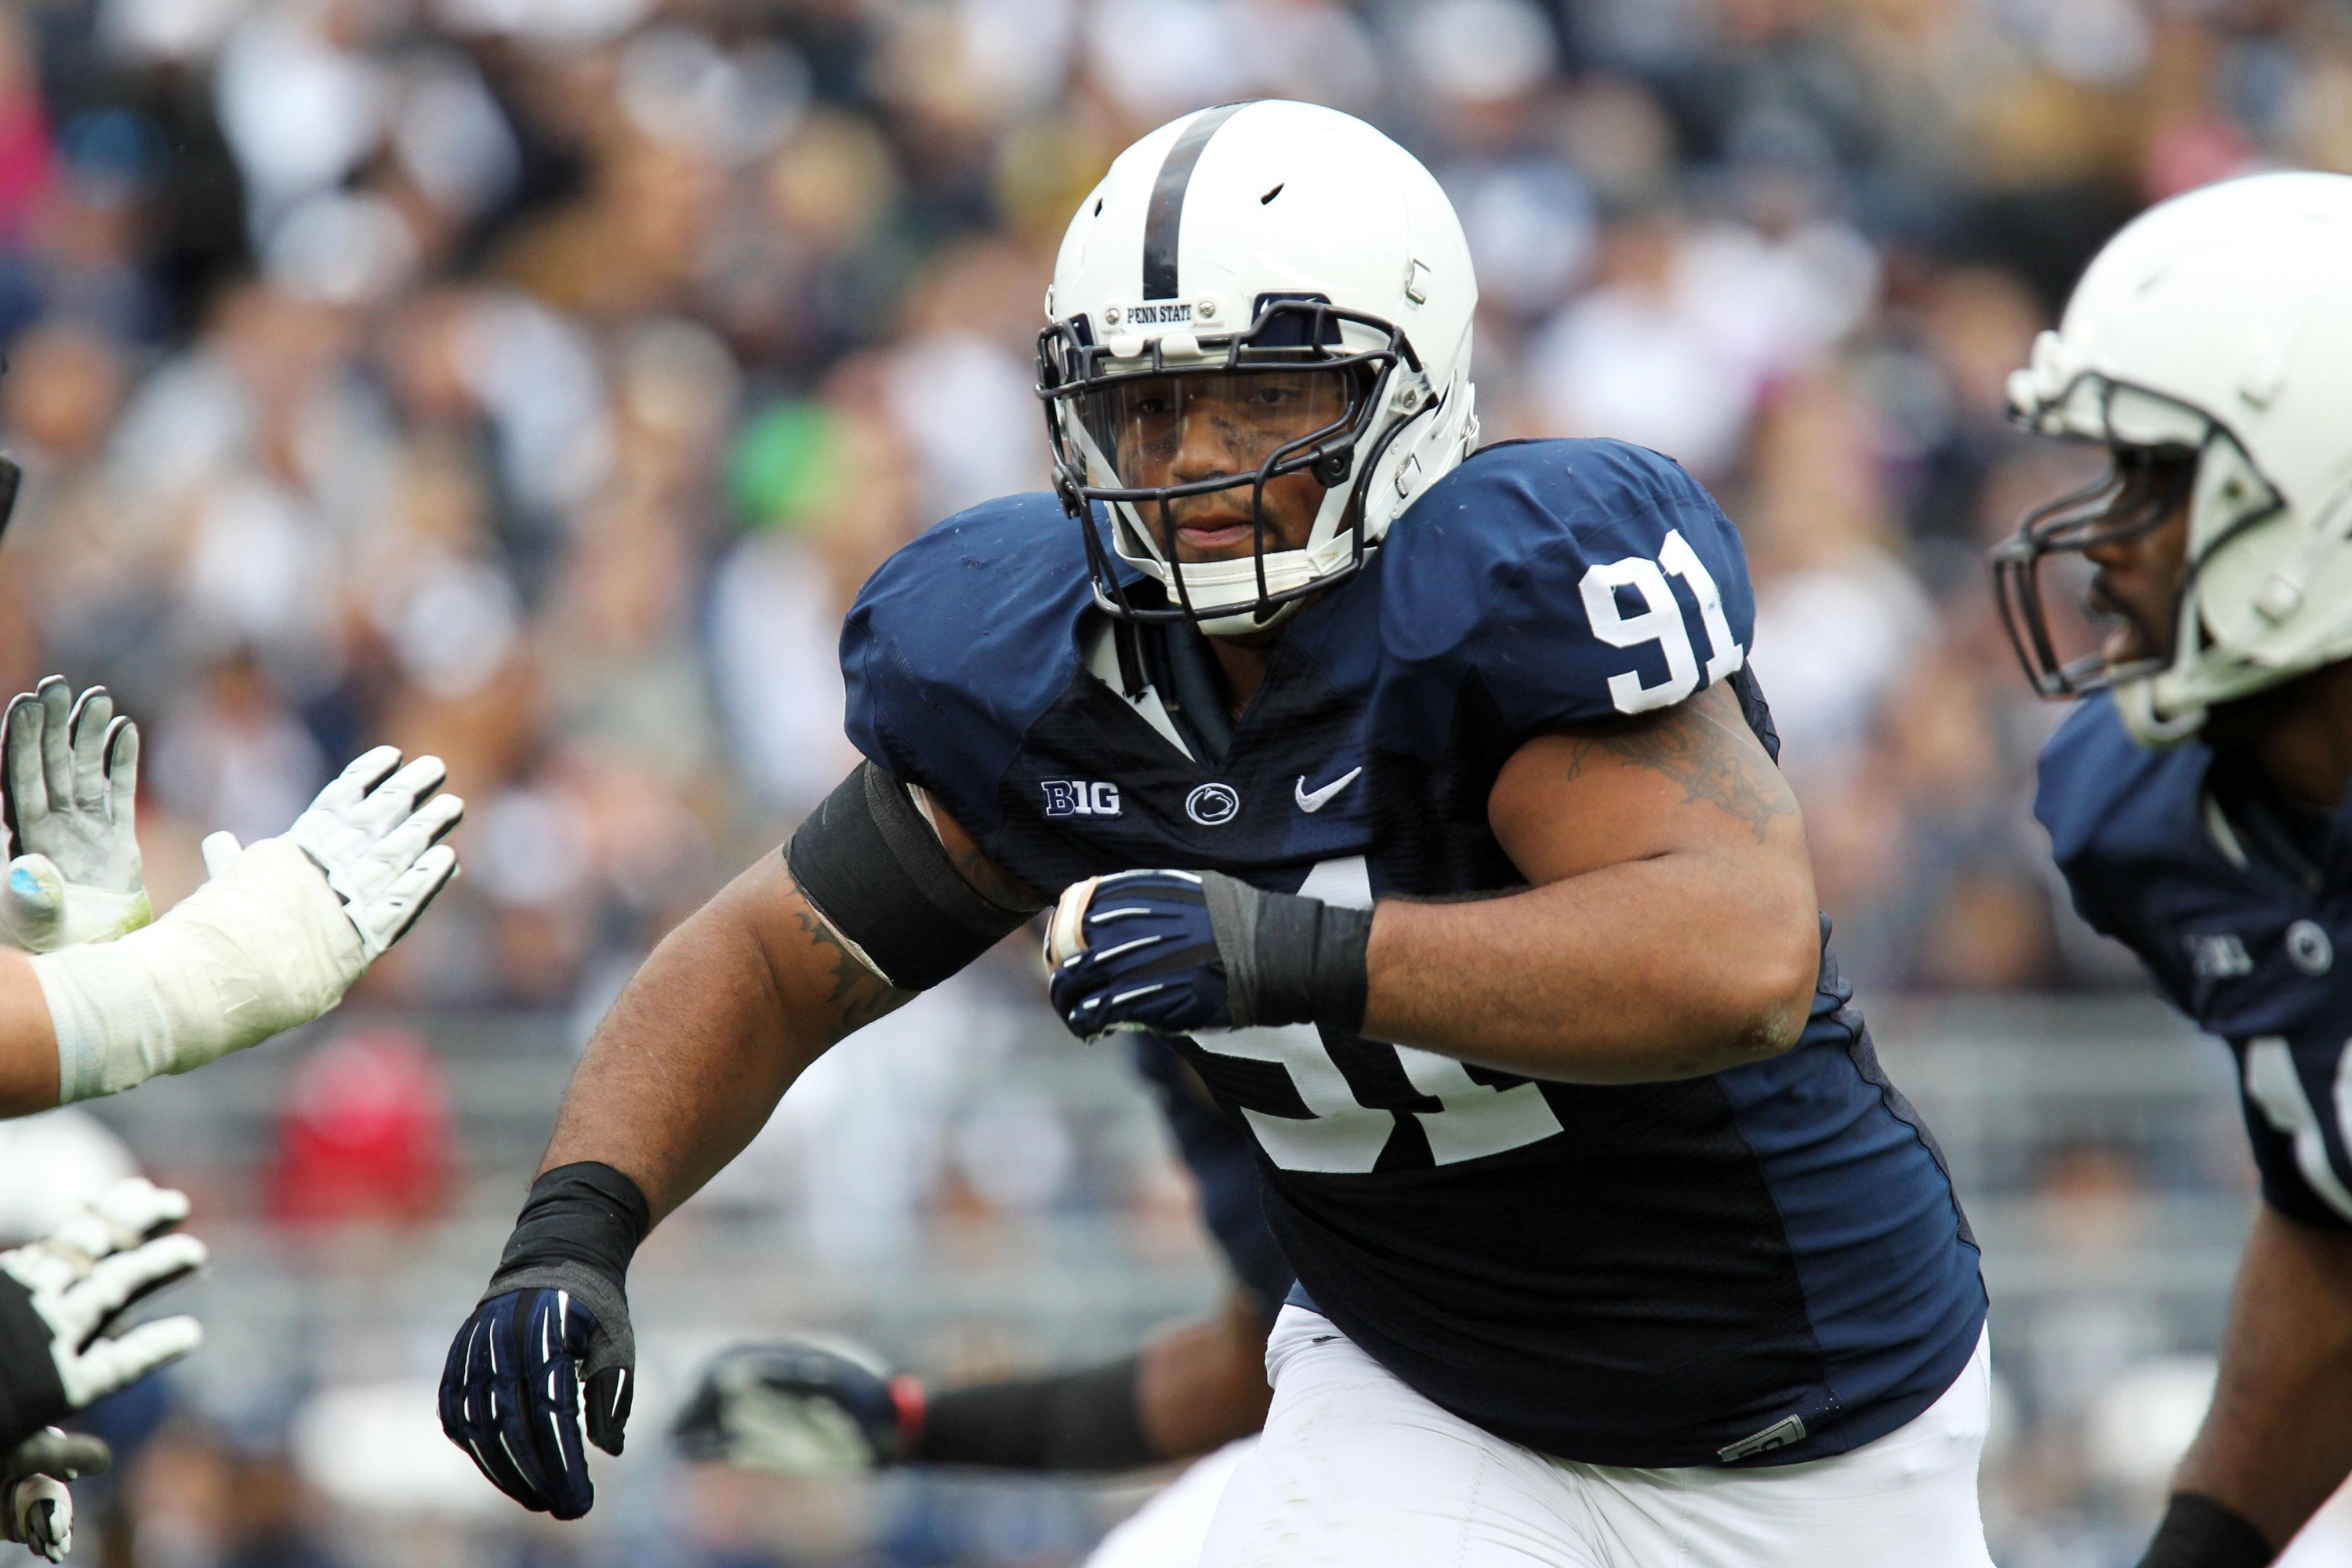 DaQuan Jones Named MVP at Nittany Lion Football Banquet - Penn State